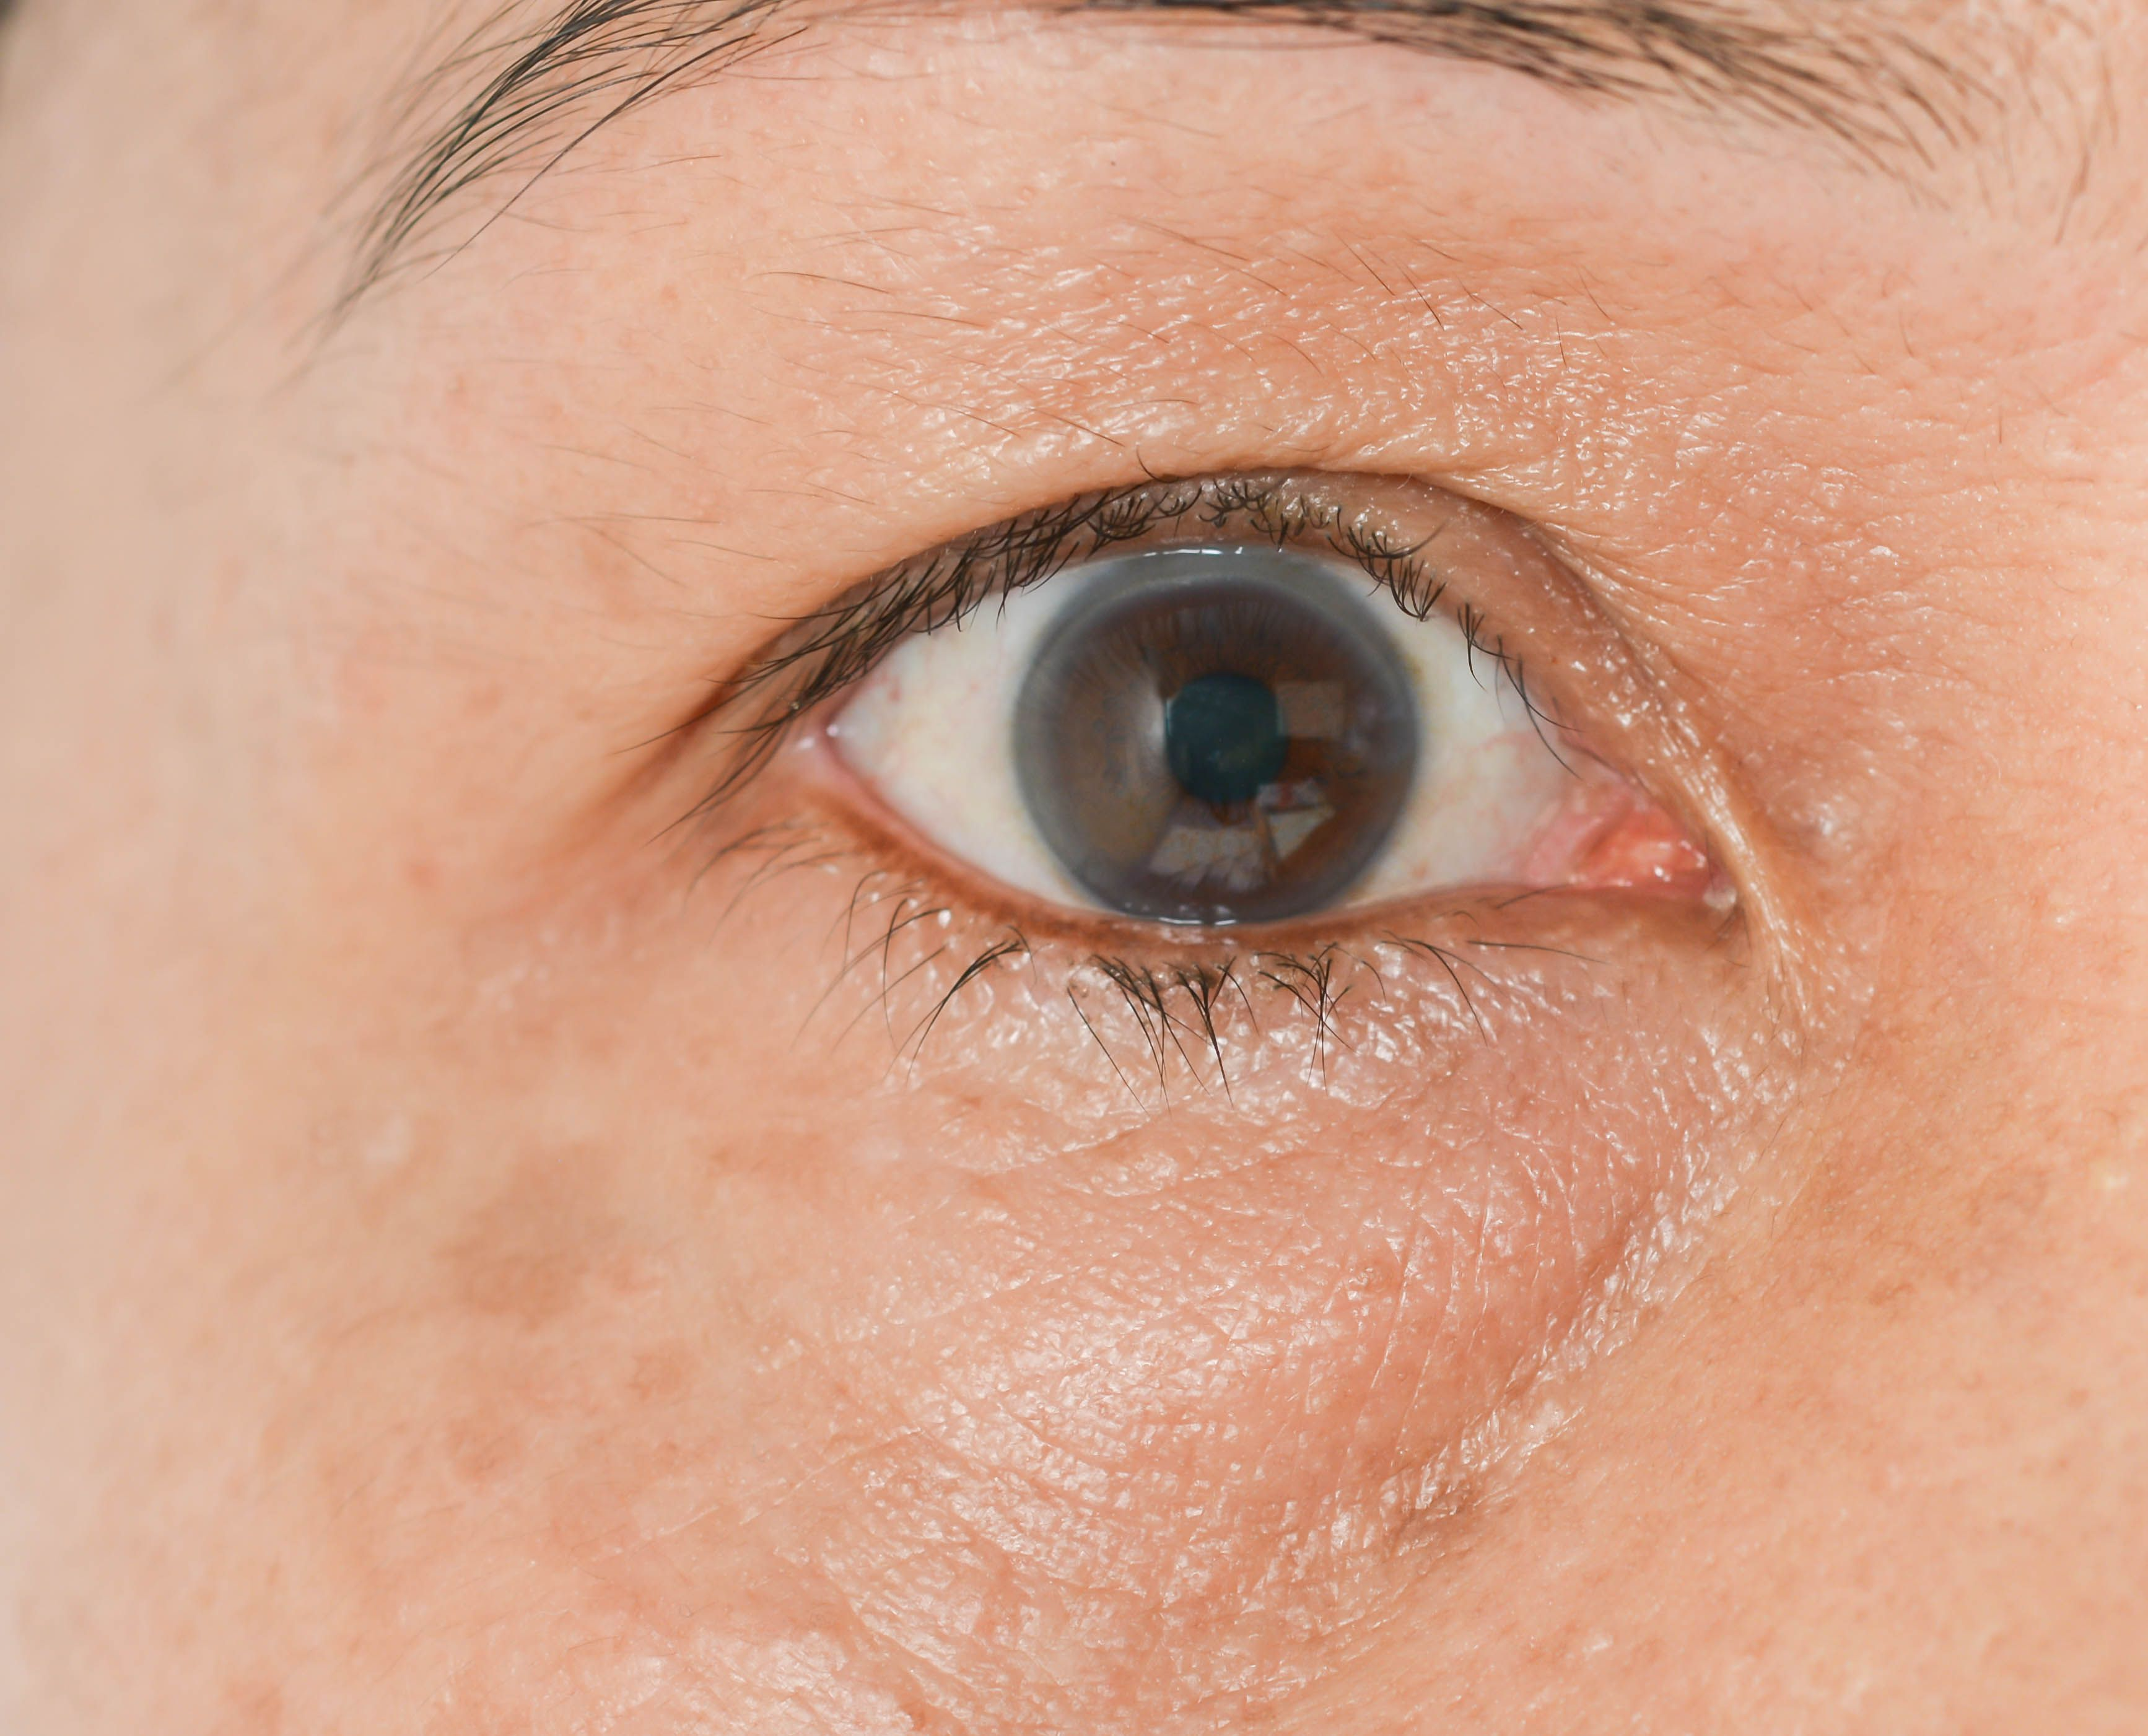 What Causes Puffy Eyes?